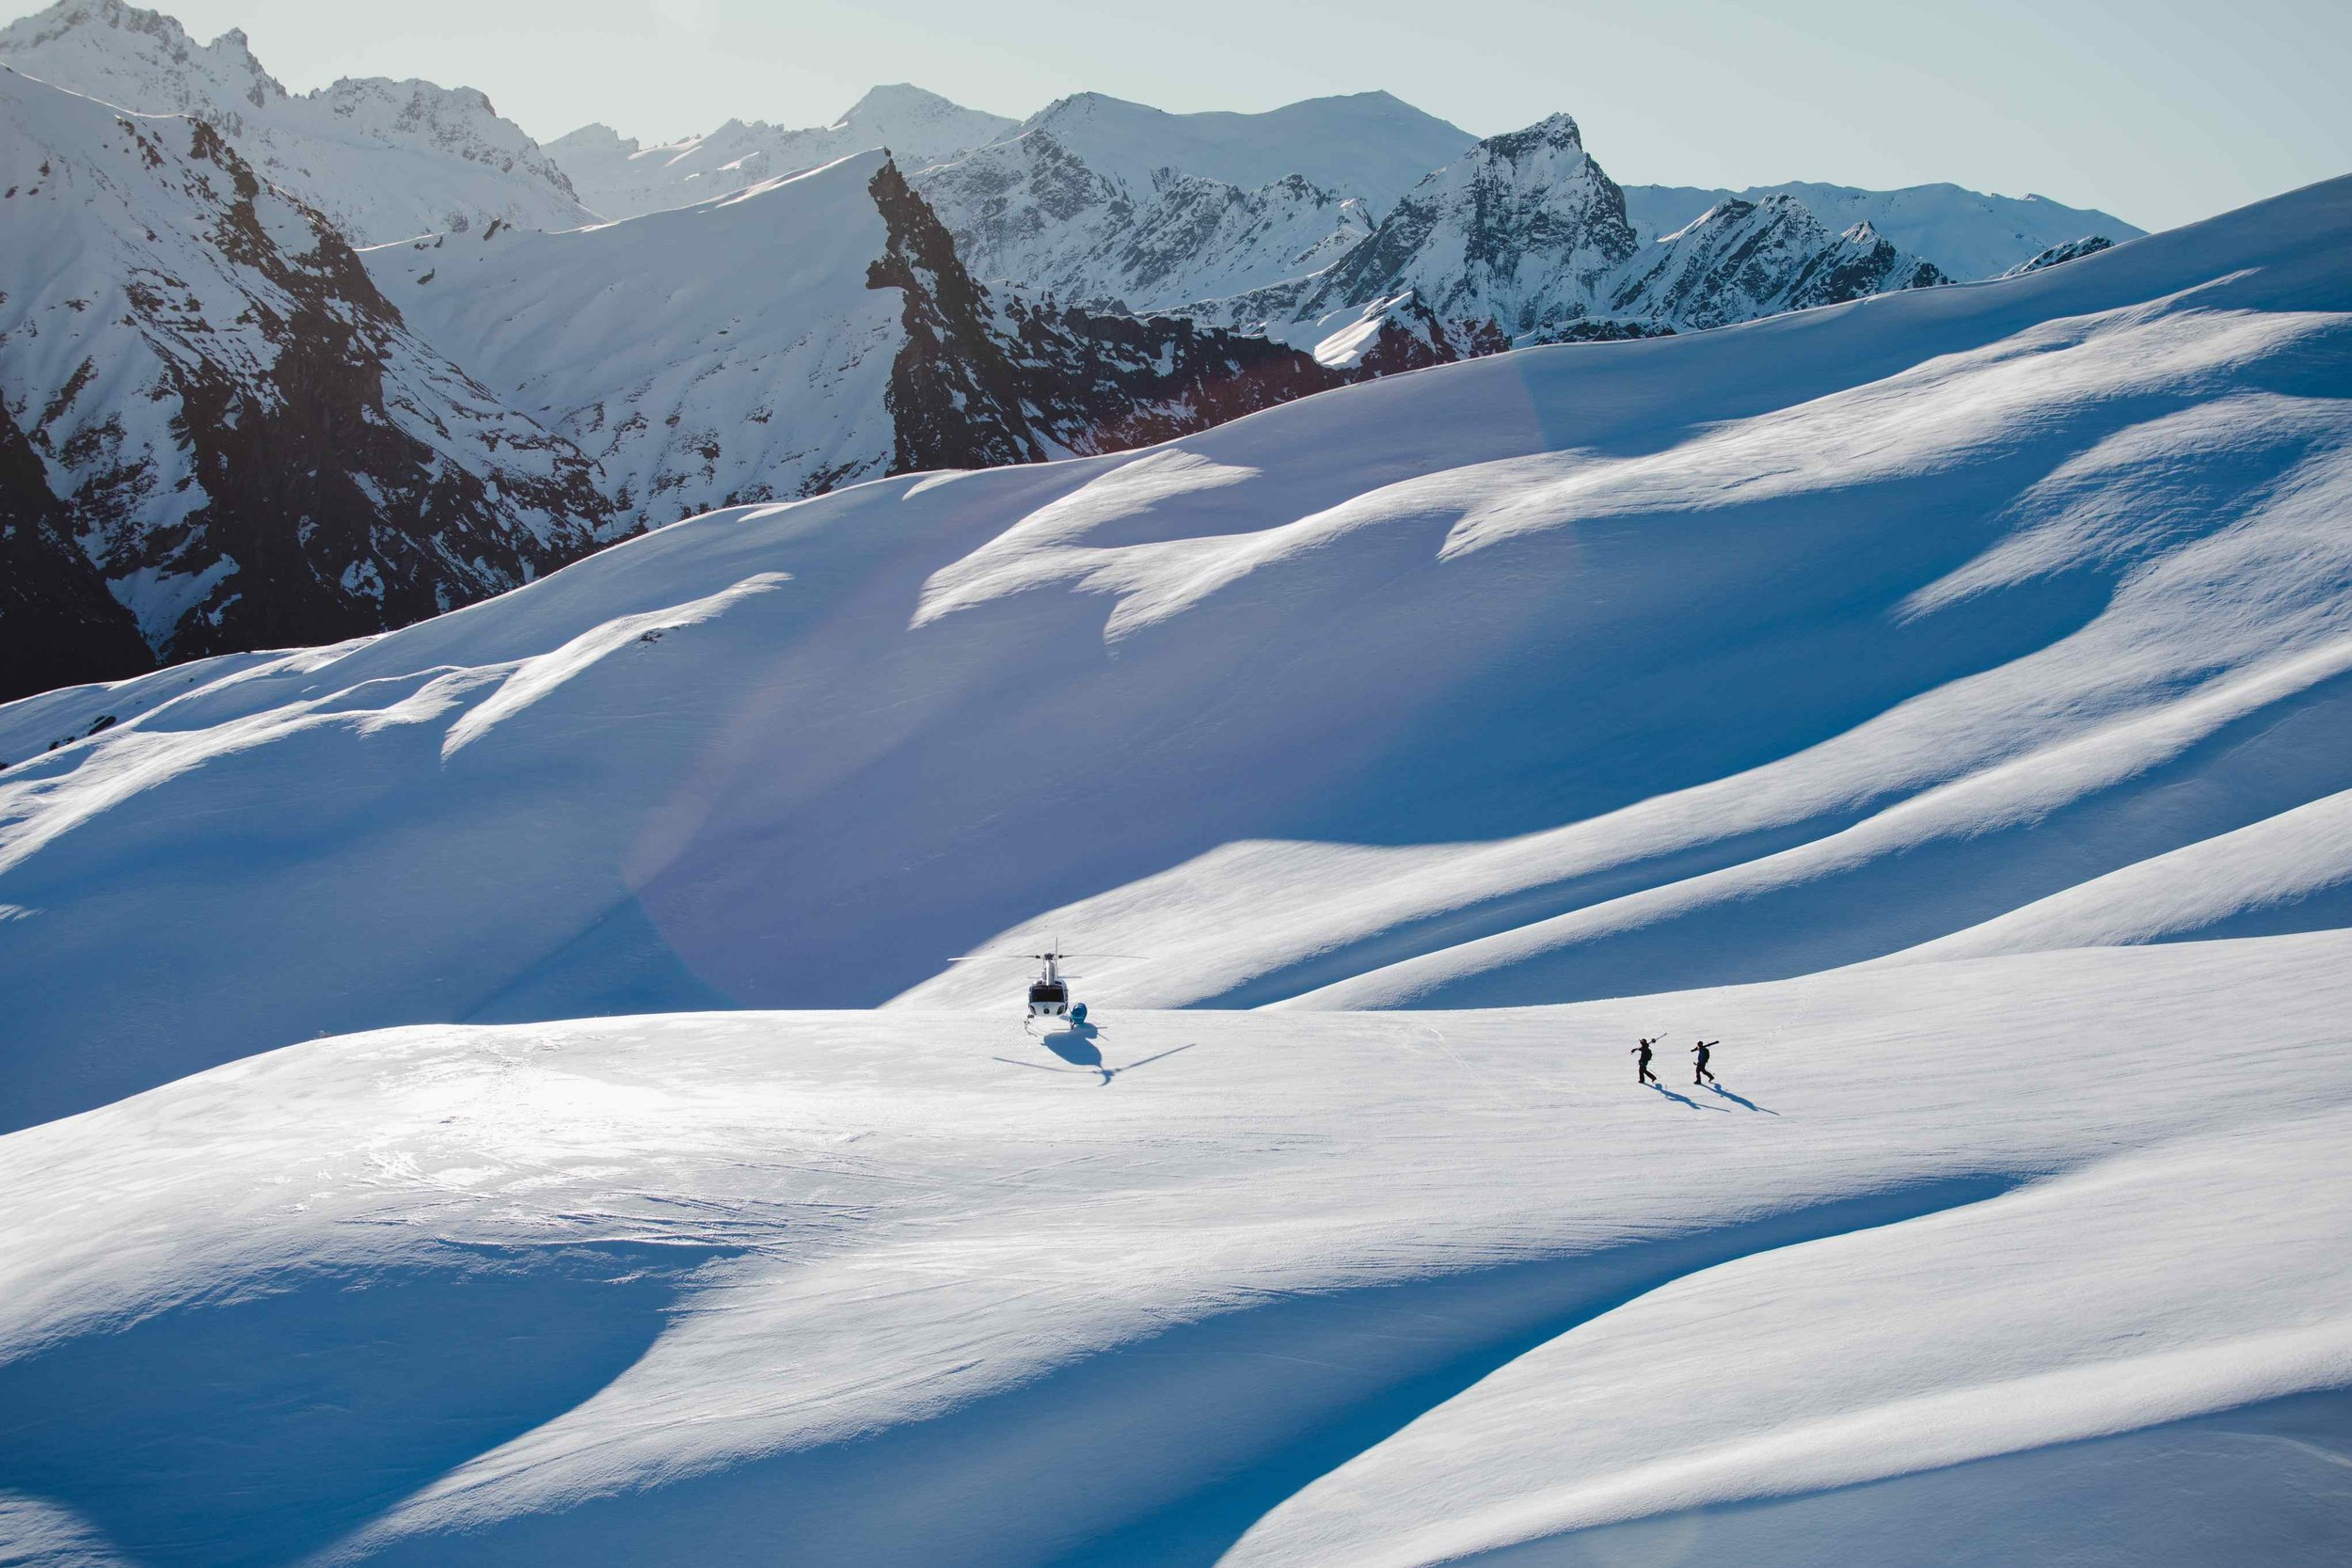 Unlimited Charter - Unrestricted heliskiing with unlimited vertical in pristine terrain. No matter how many powder turns you make we wont charge you anymore.FROM $13,995